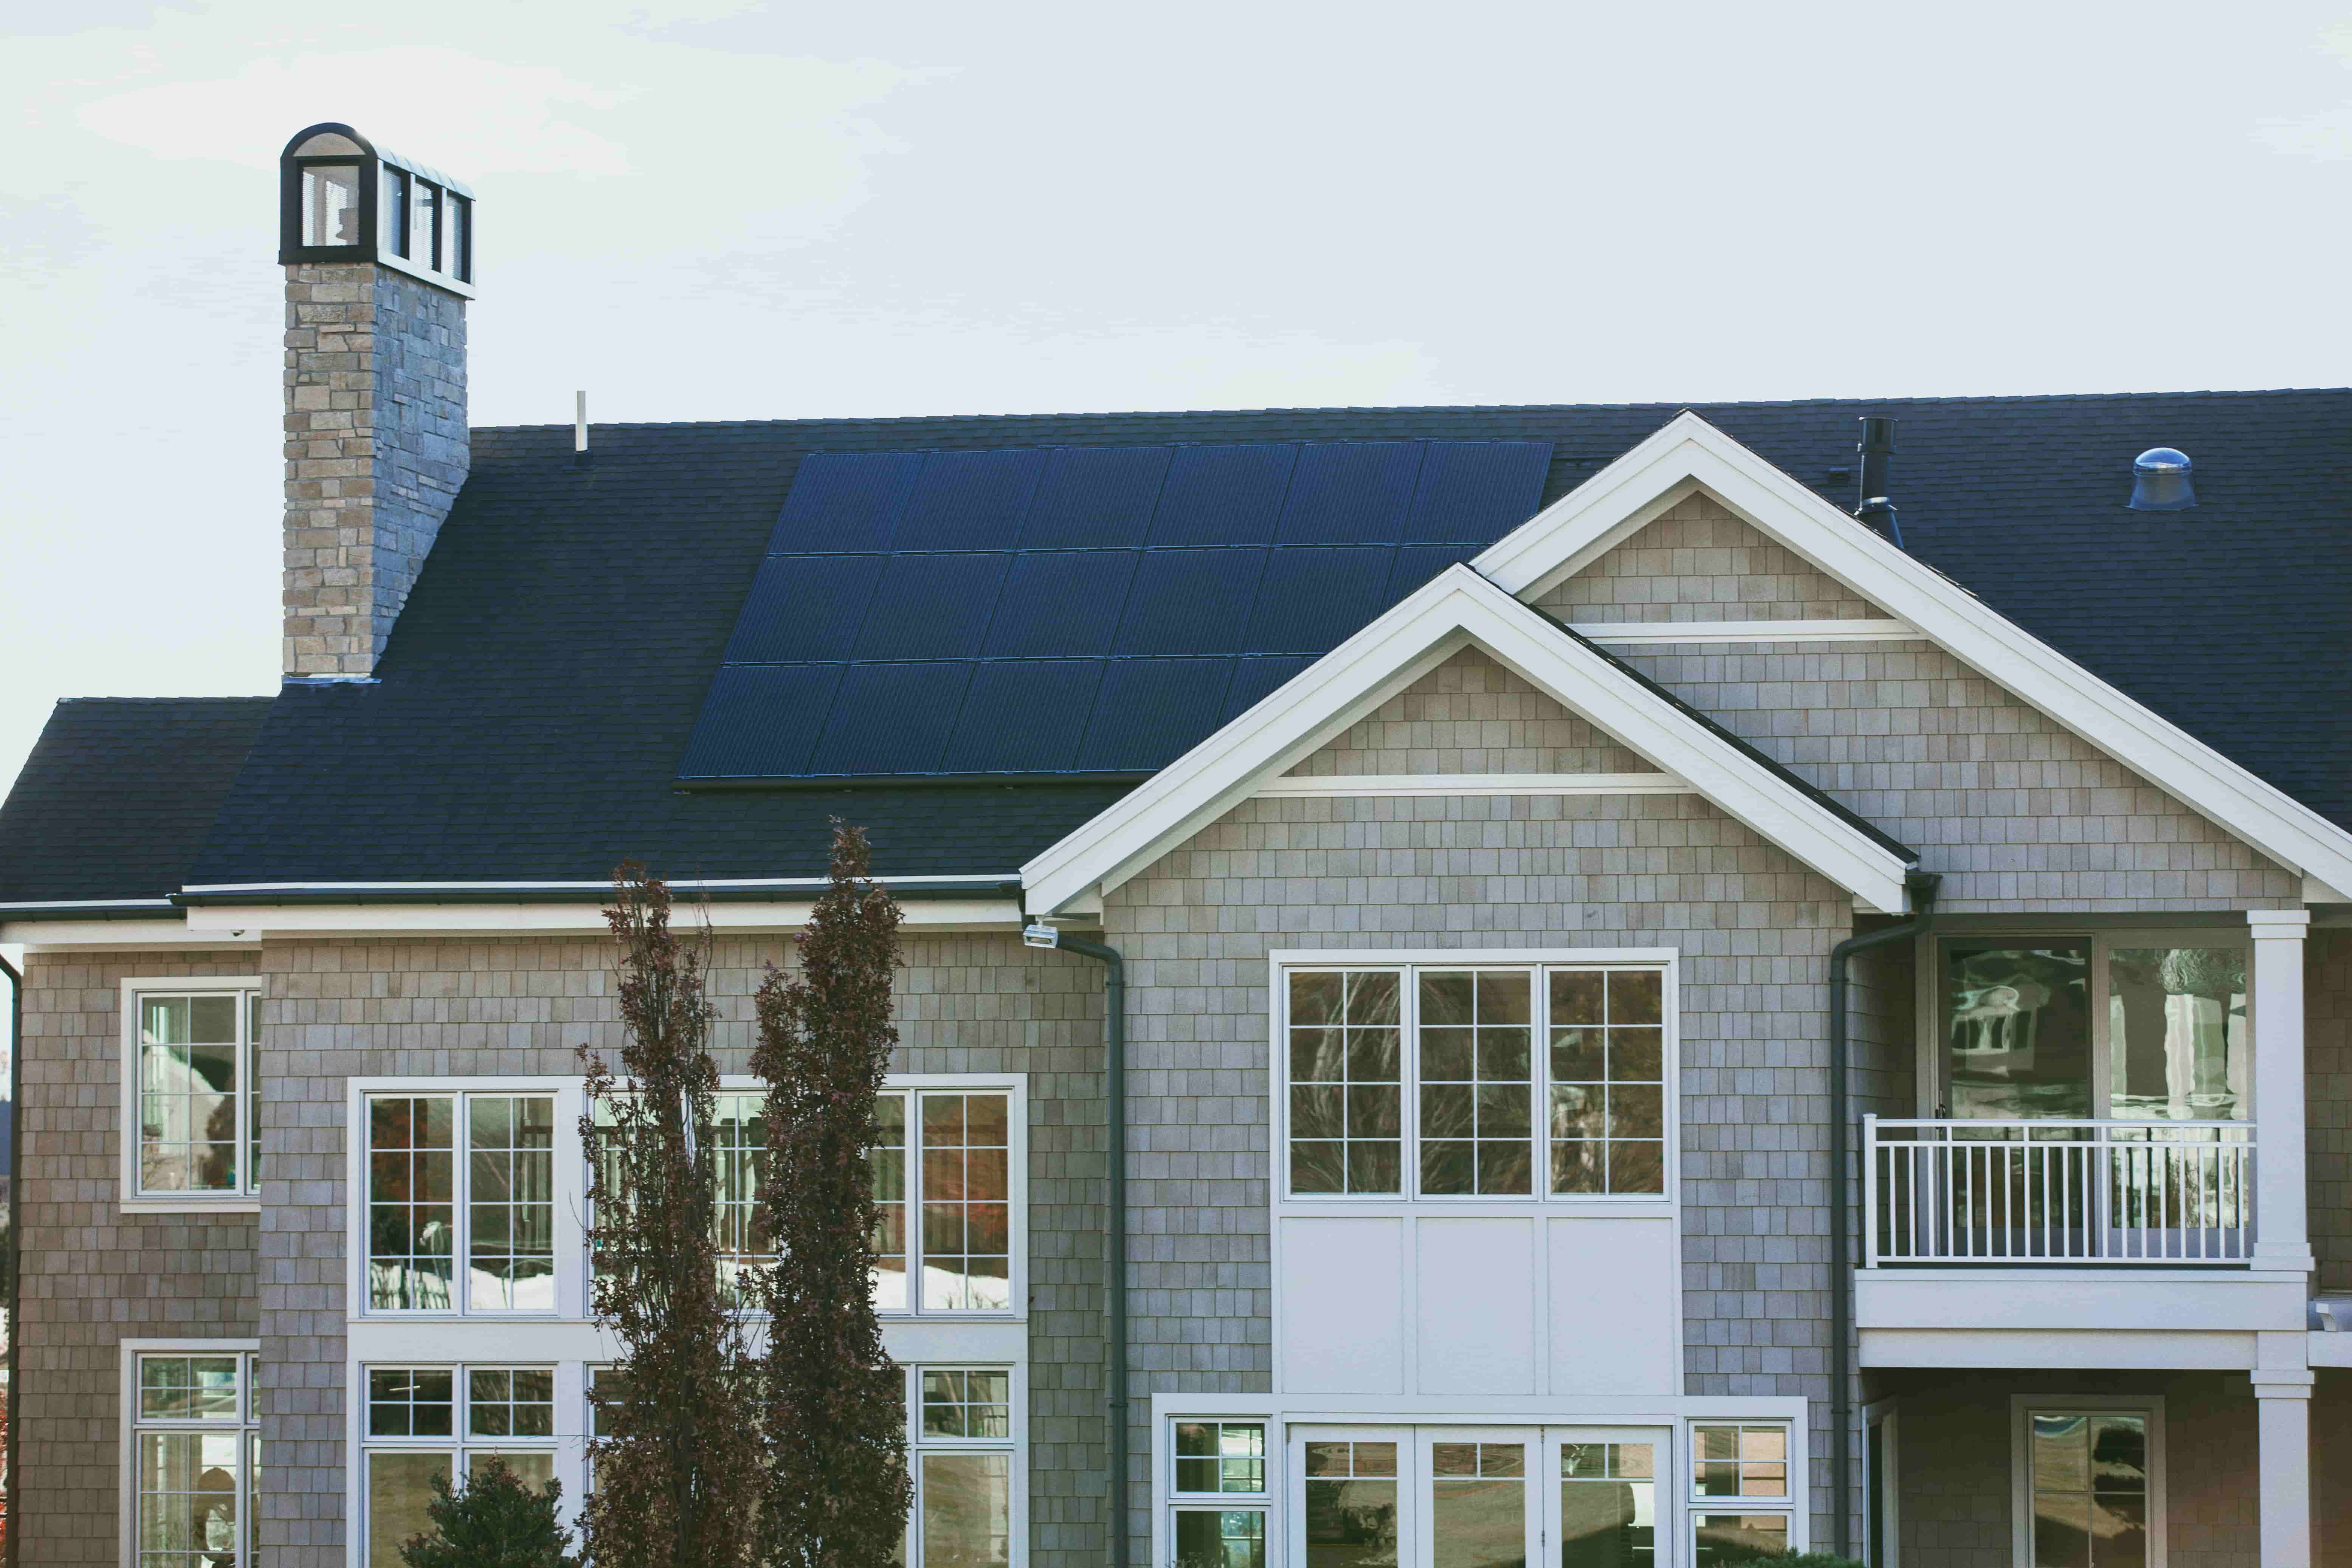 Mounting and caring for solar panels in Missouri